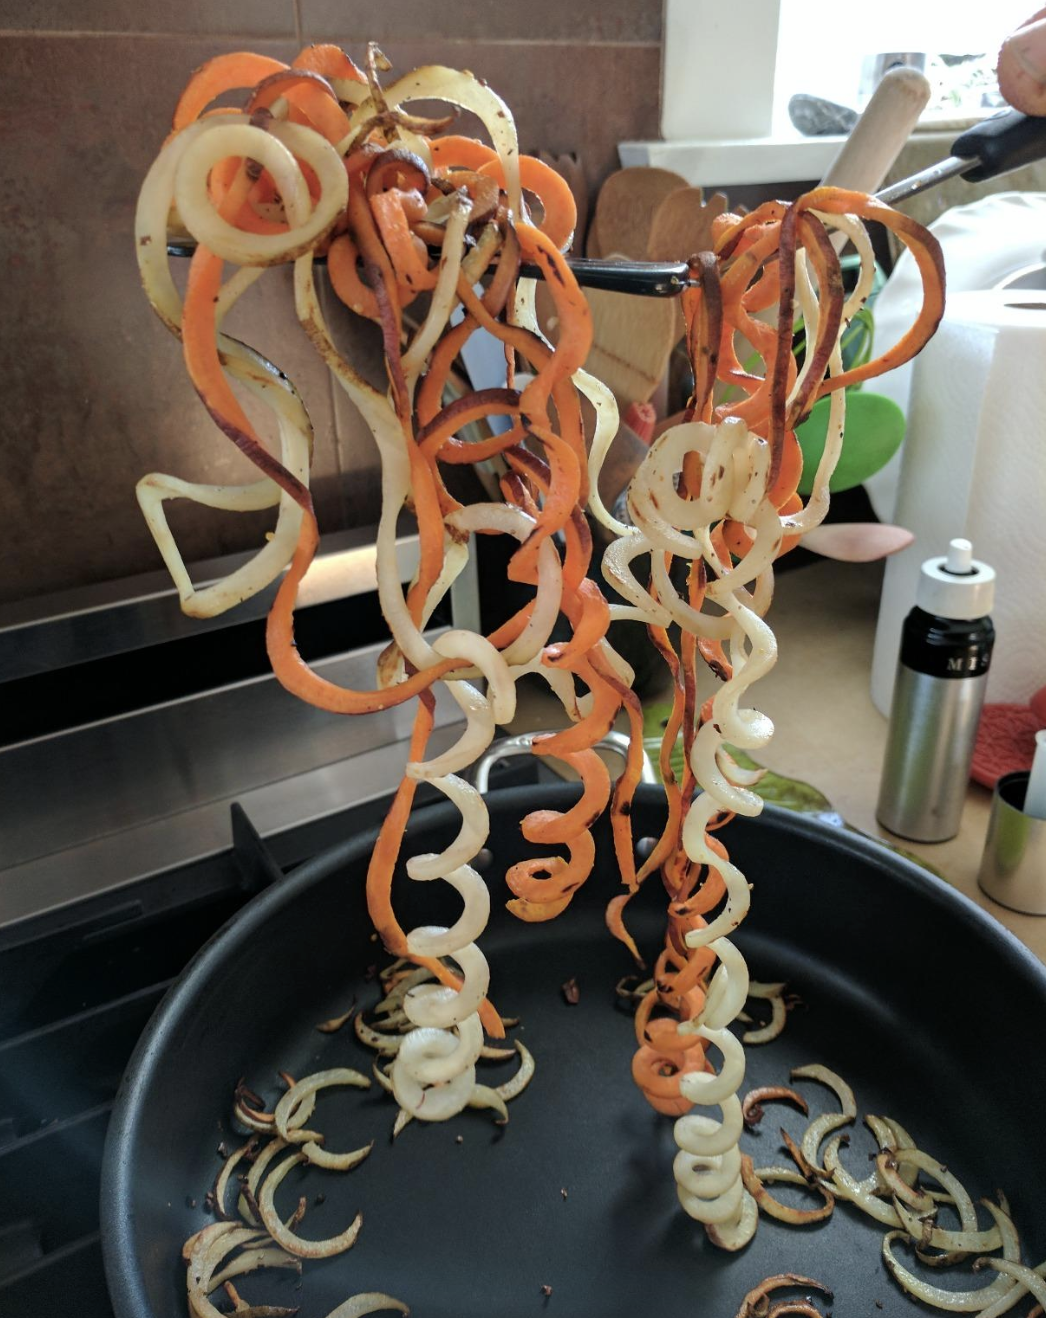 orange and white spiralized veggie noodles being held over pan